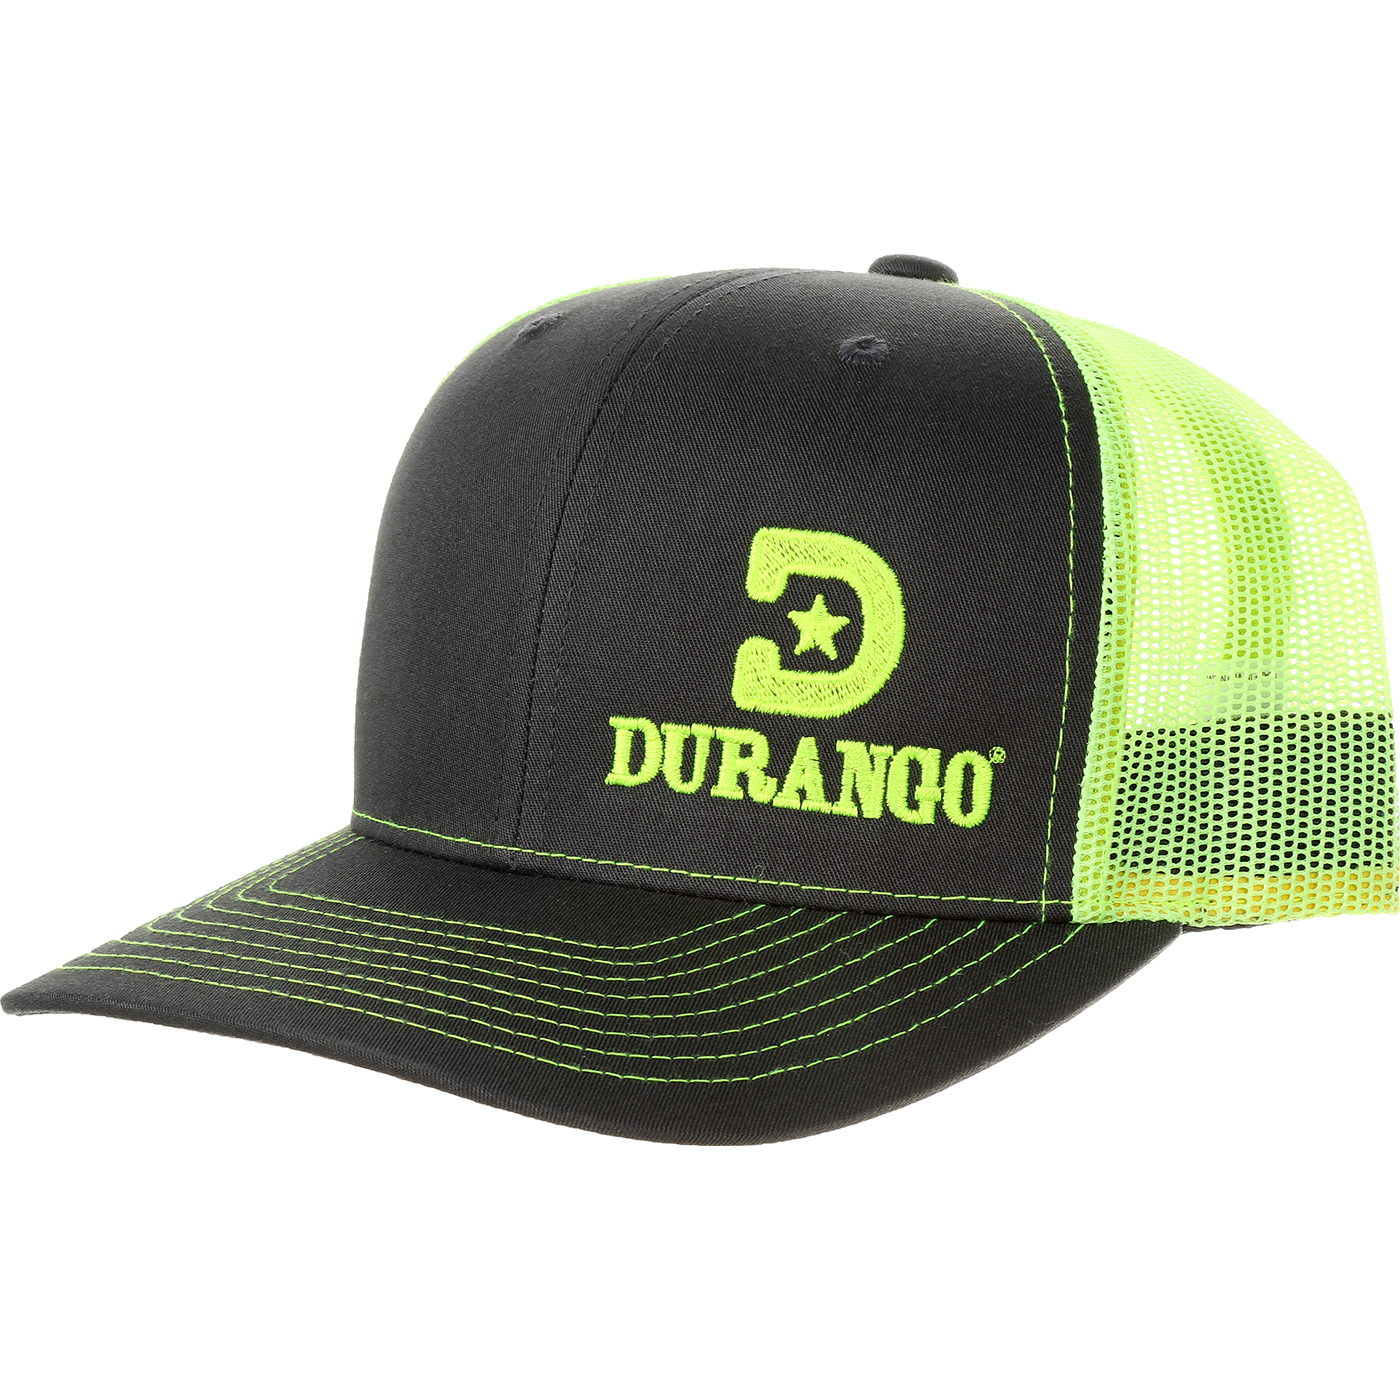 Durango Richardson Ball Cap 0270fd64b5f